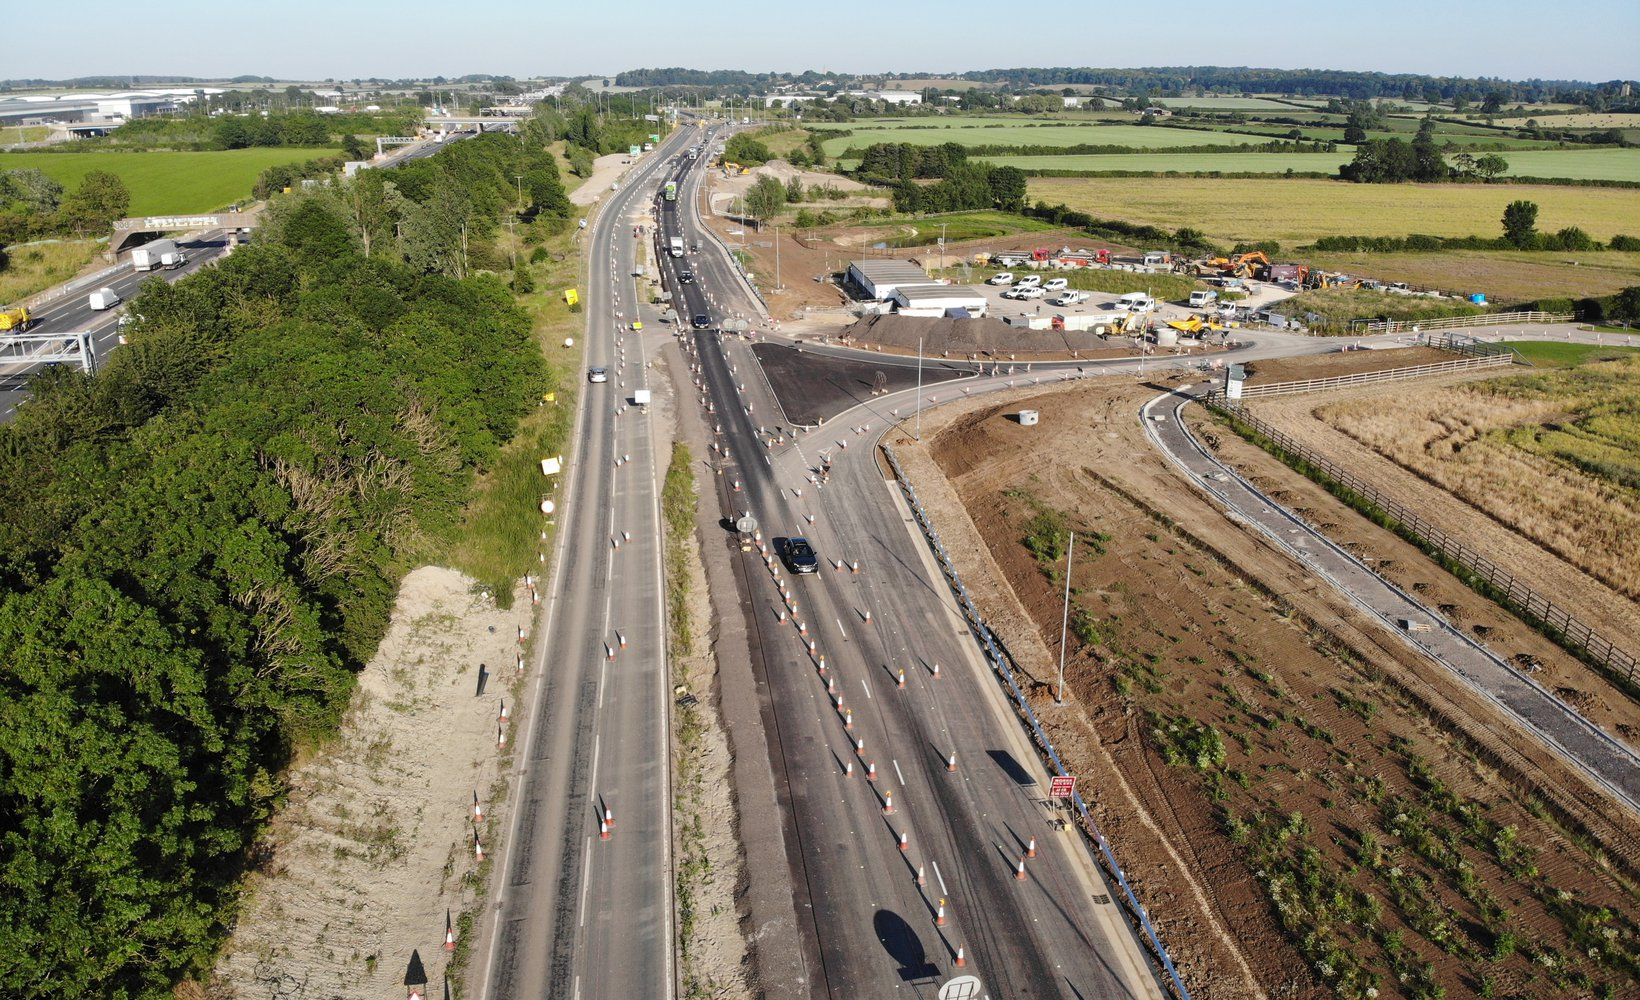 An aerial view of the A421 dualling project site